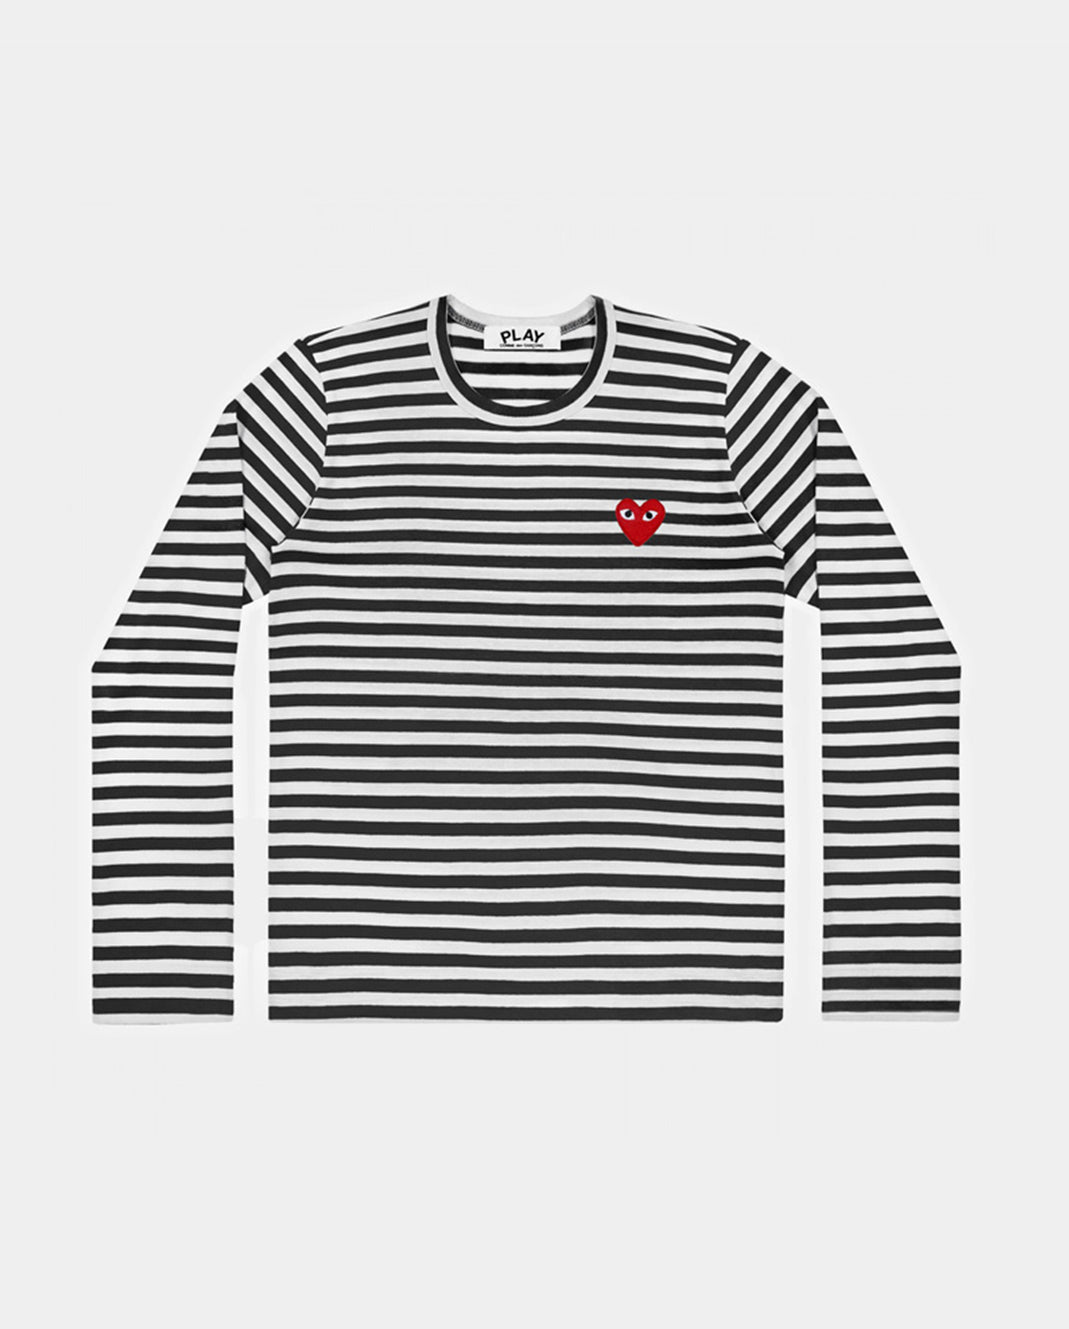 T-SHIRT T164 L/S STRIPE RED HEART PATCH / BLACK